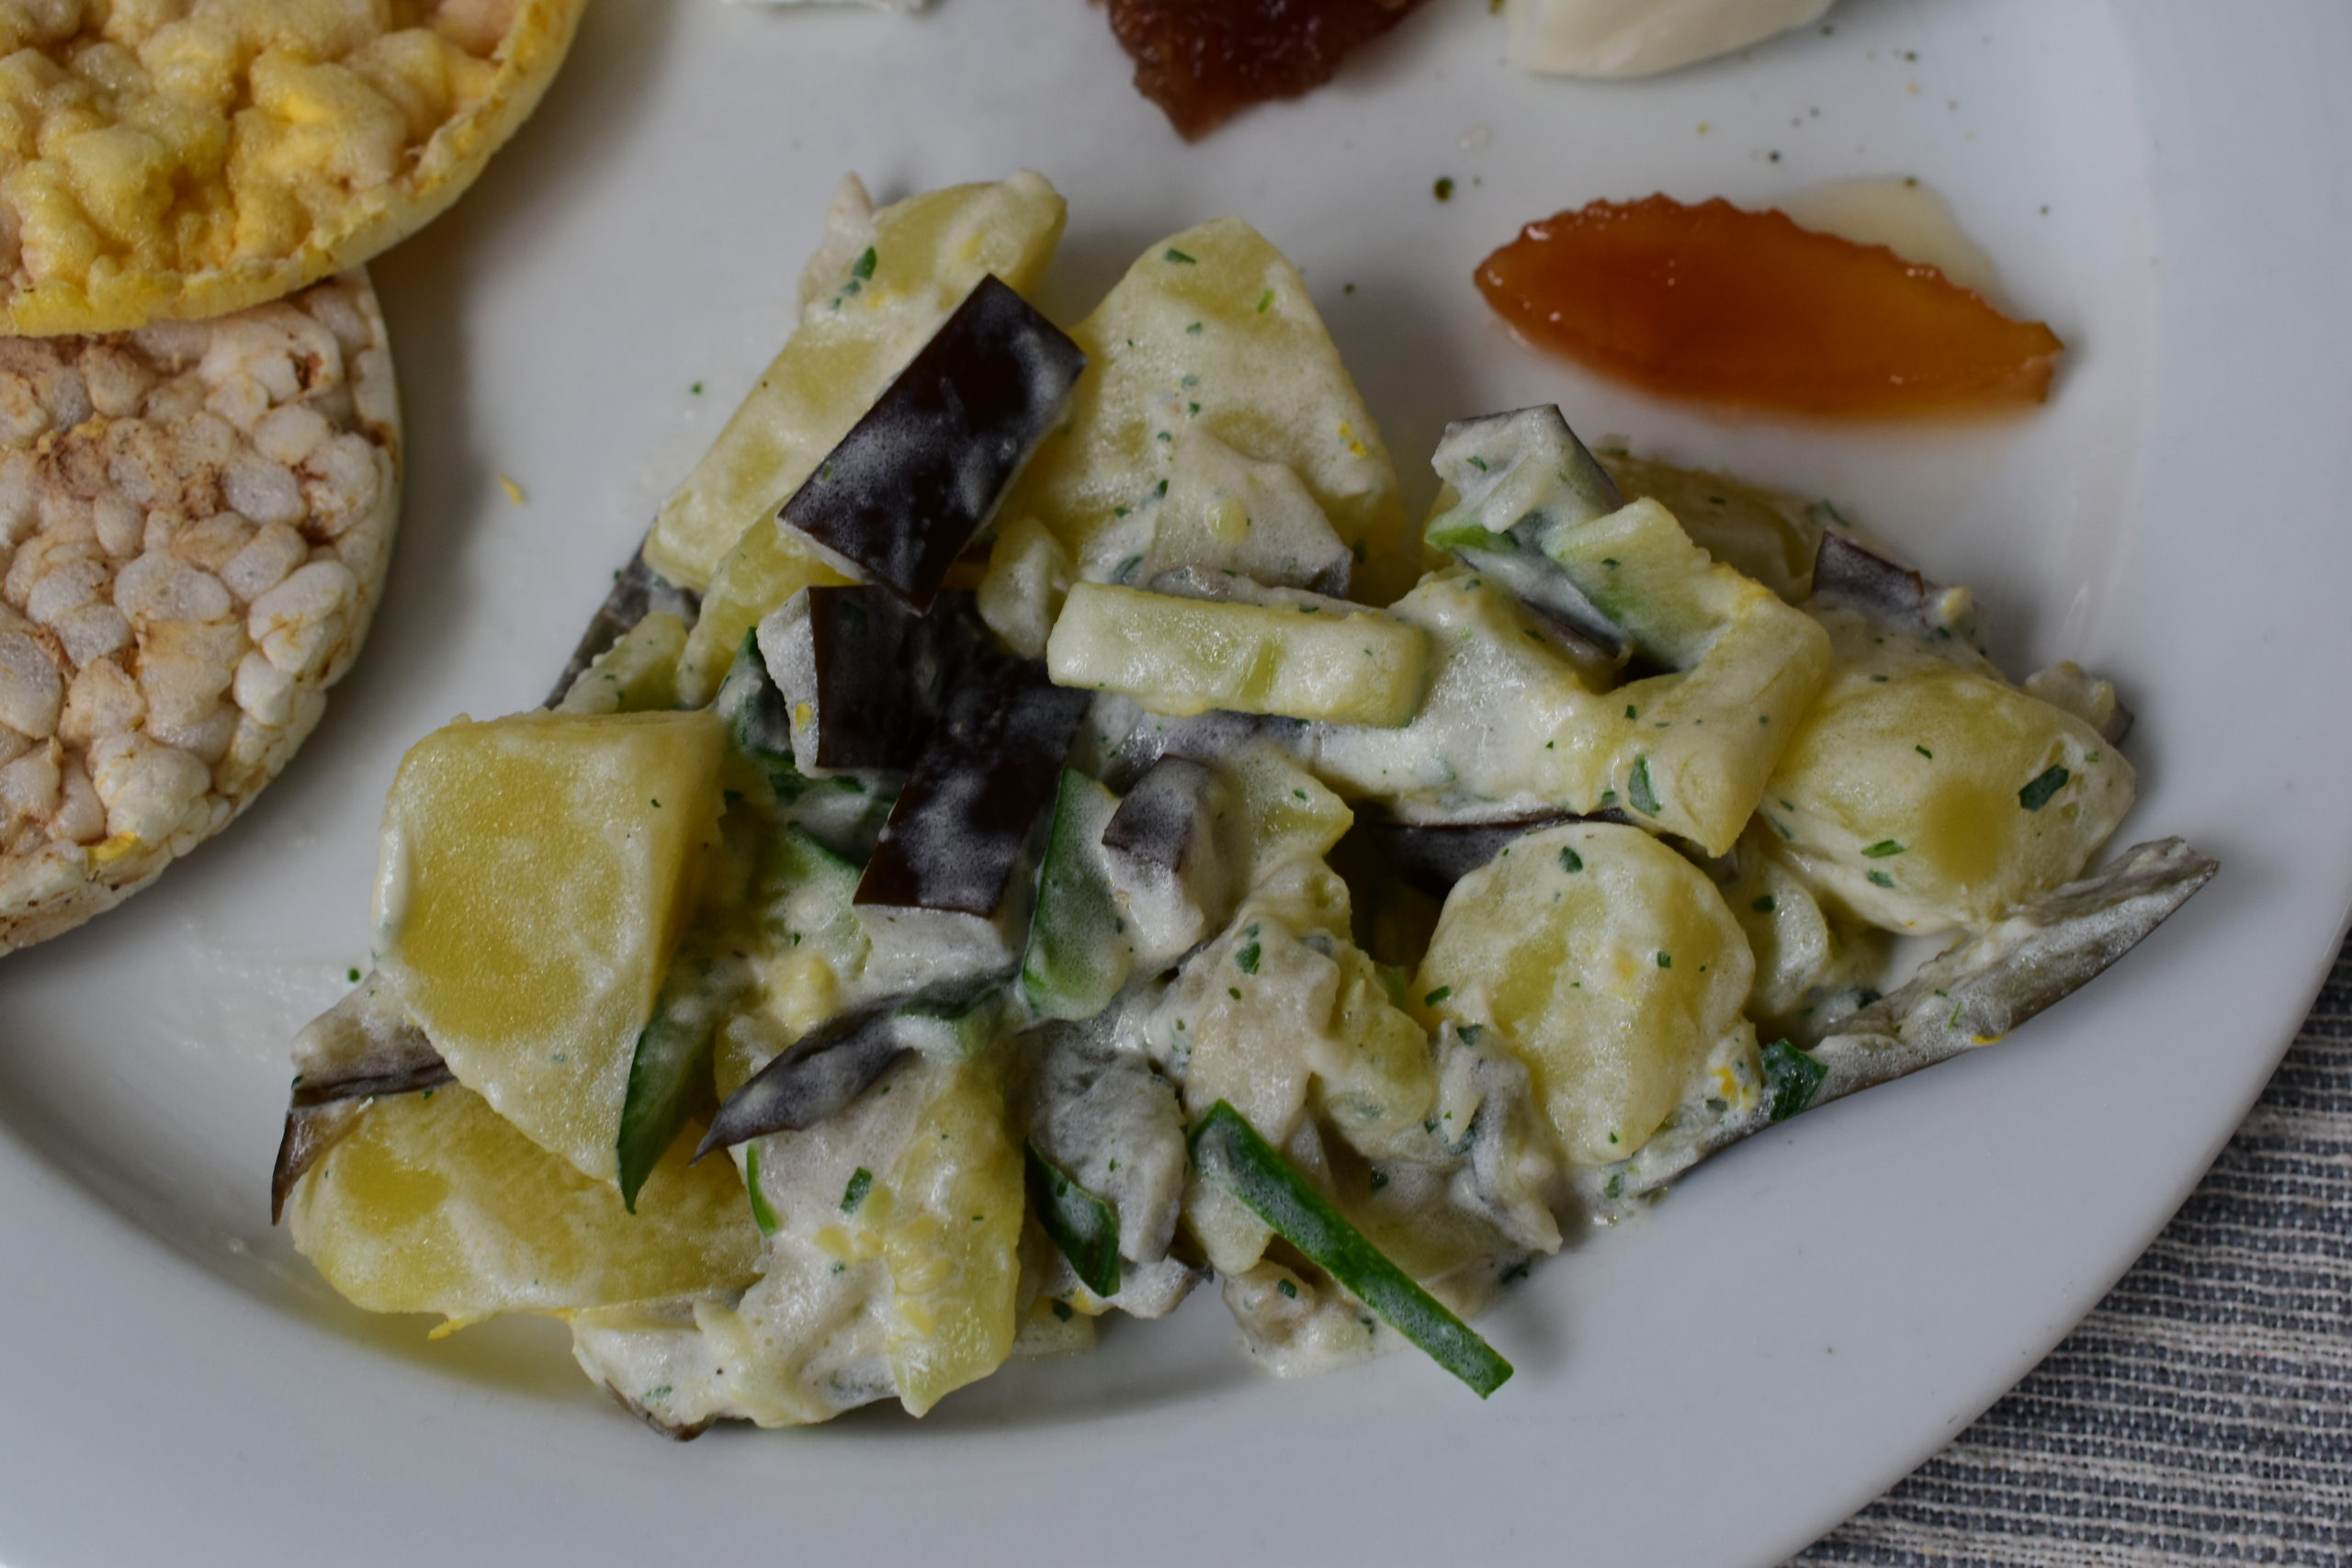 Potato, aubergines and zucchini salad with spreadable goat's cheese